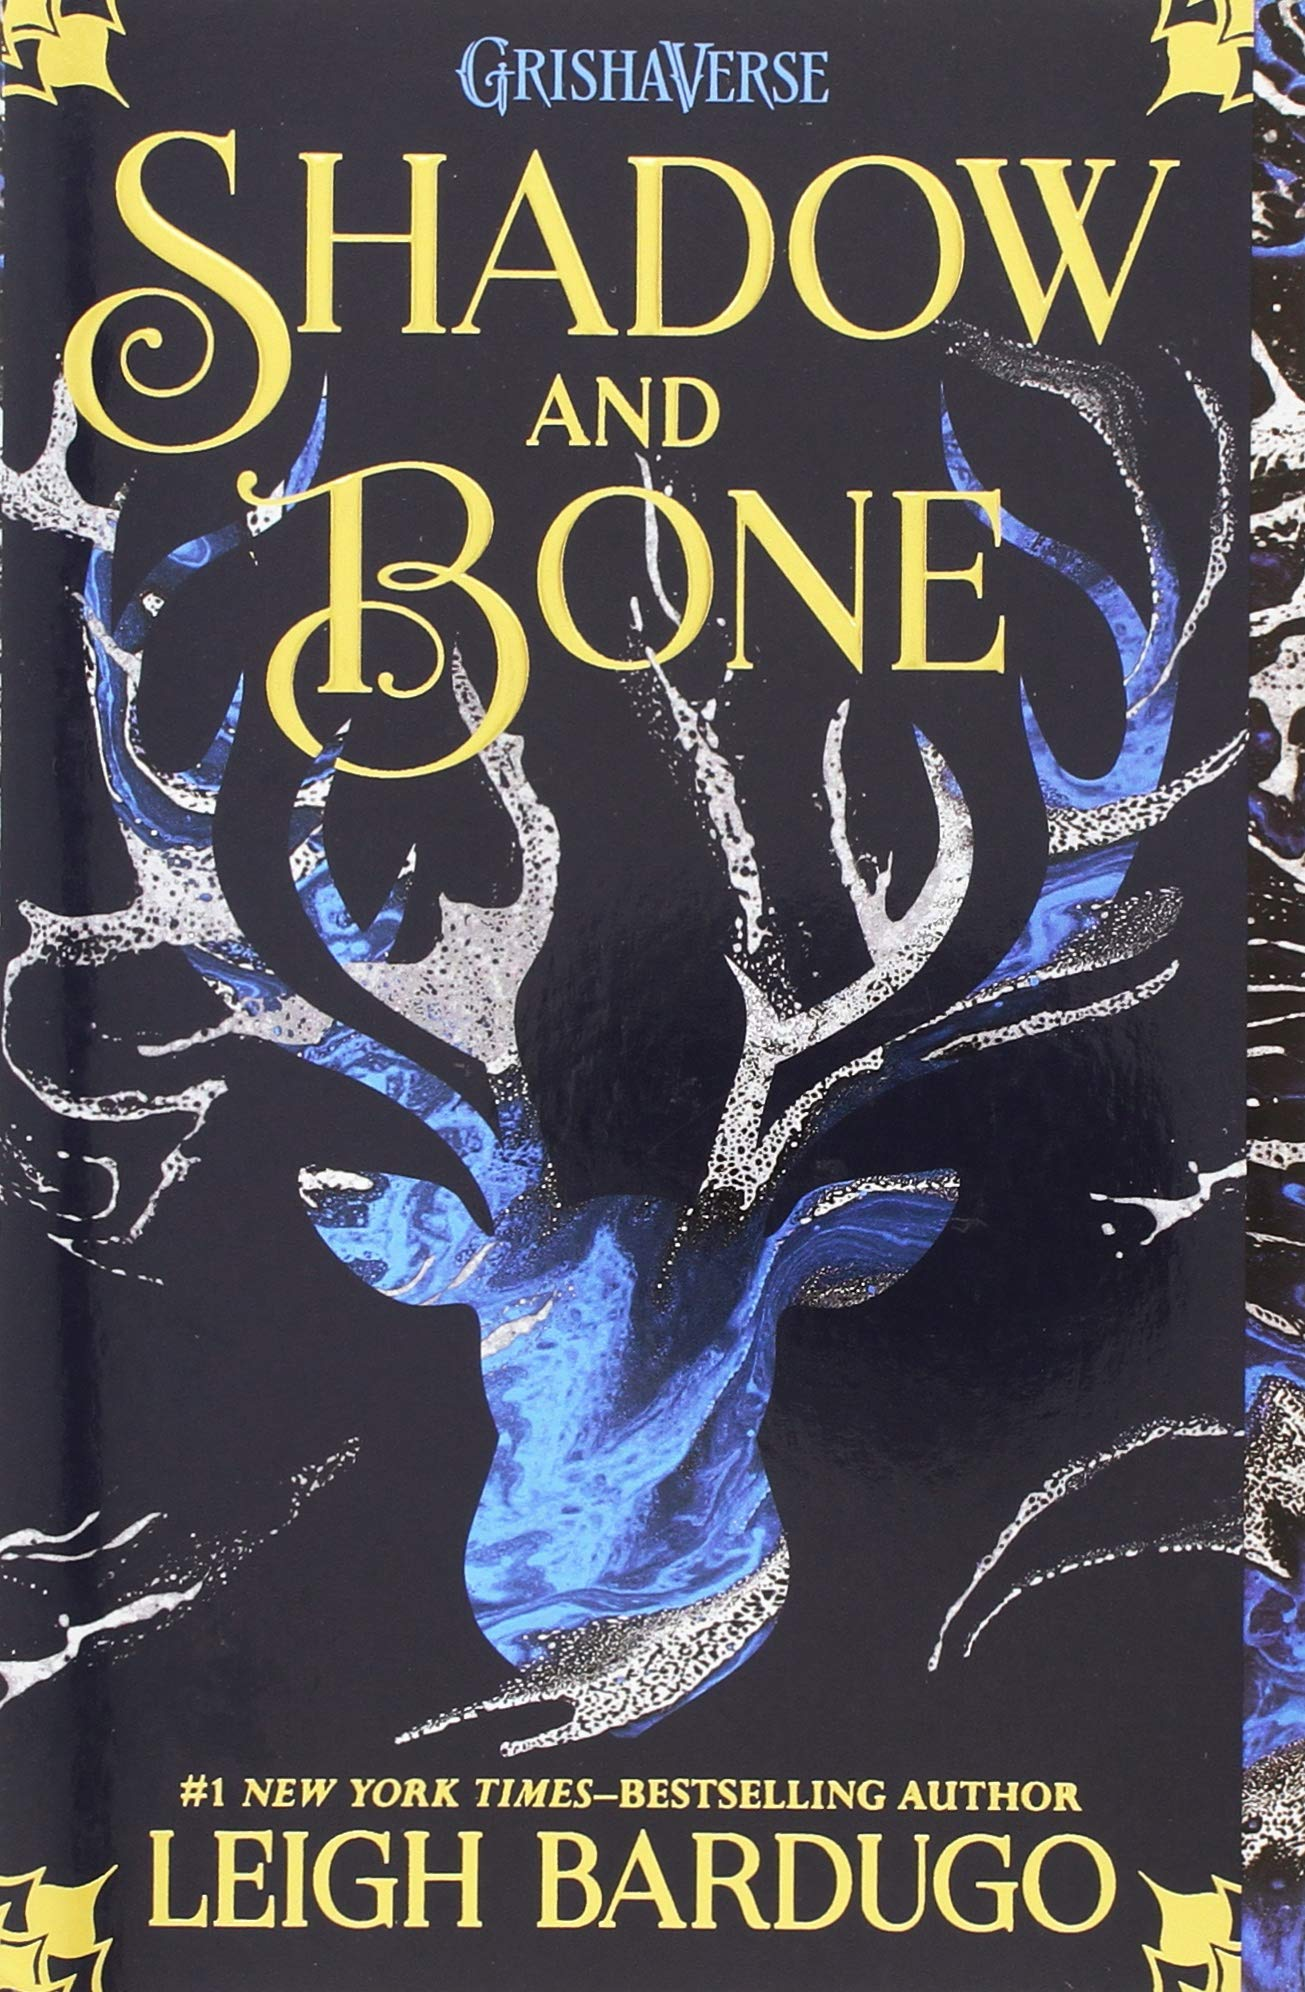 Shadow and Bone (Grisha Trilogy) [Assorted Cover image]: Amazon.co ...